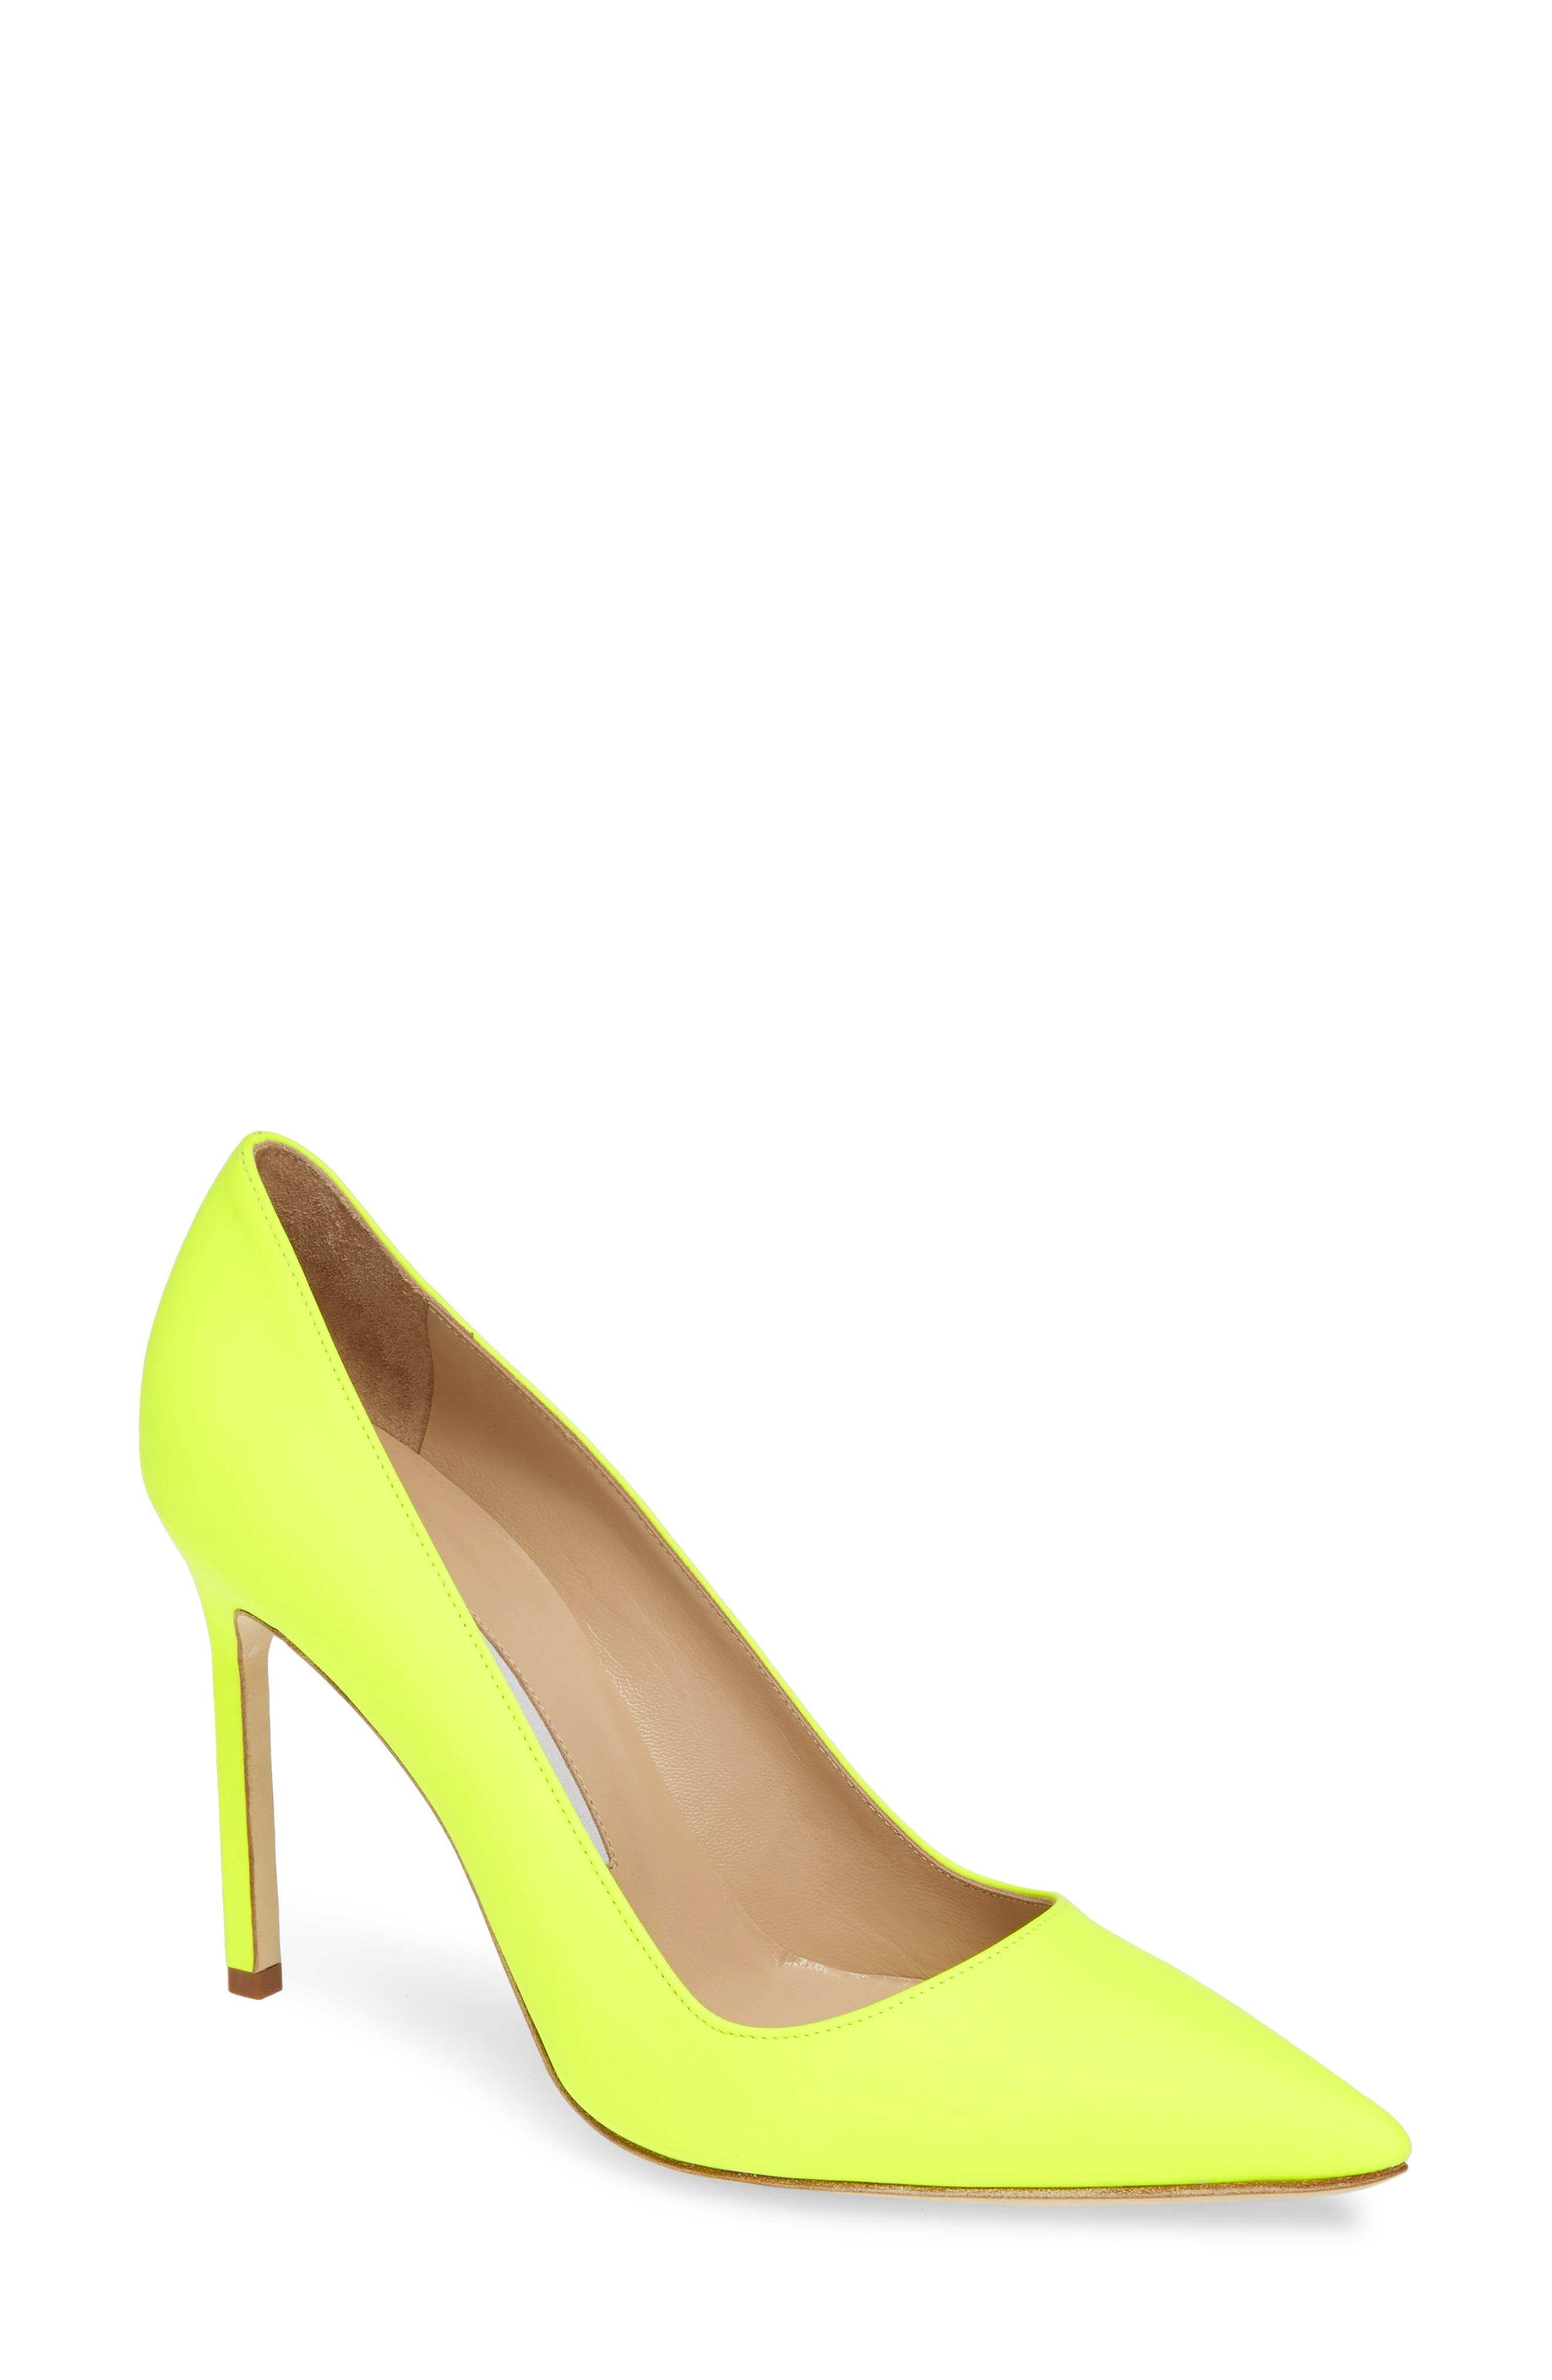 MANOLO BLAHNIK, 'BB' Pointy Toe Pump, Main thumbnail 1, color, YELLOW PATENT